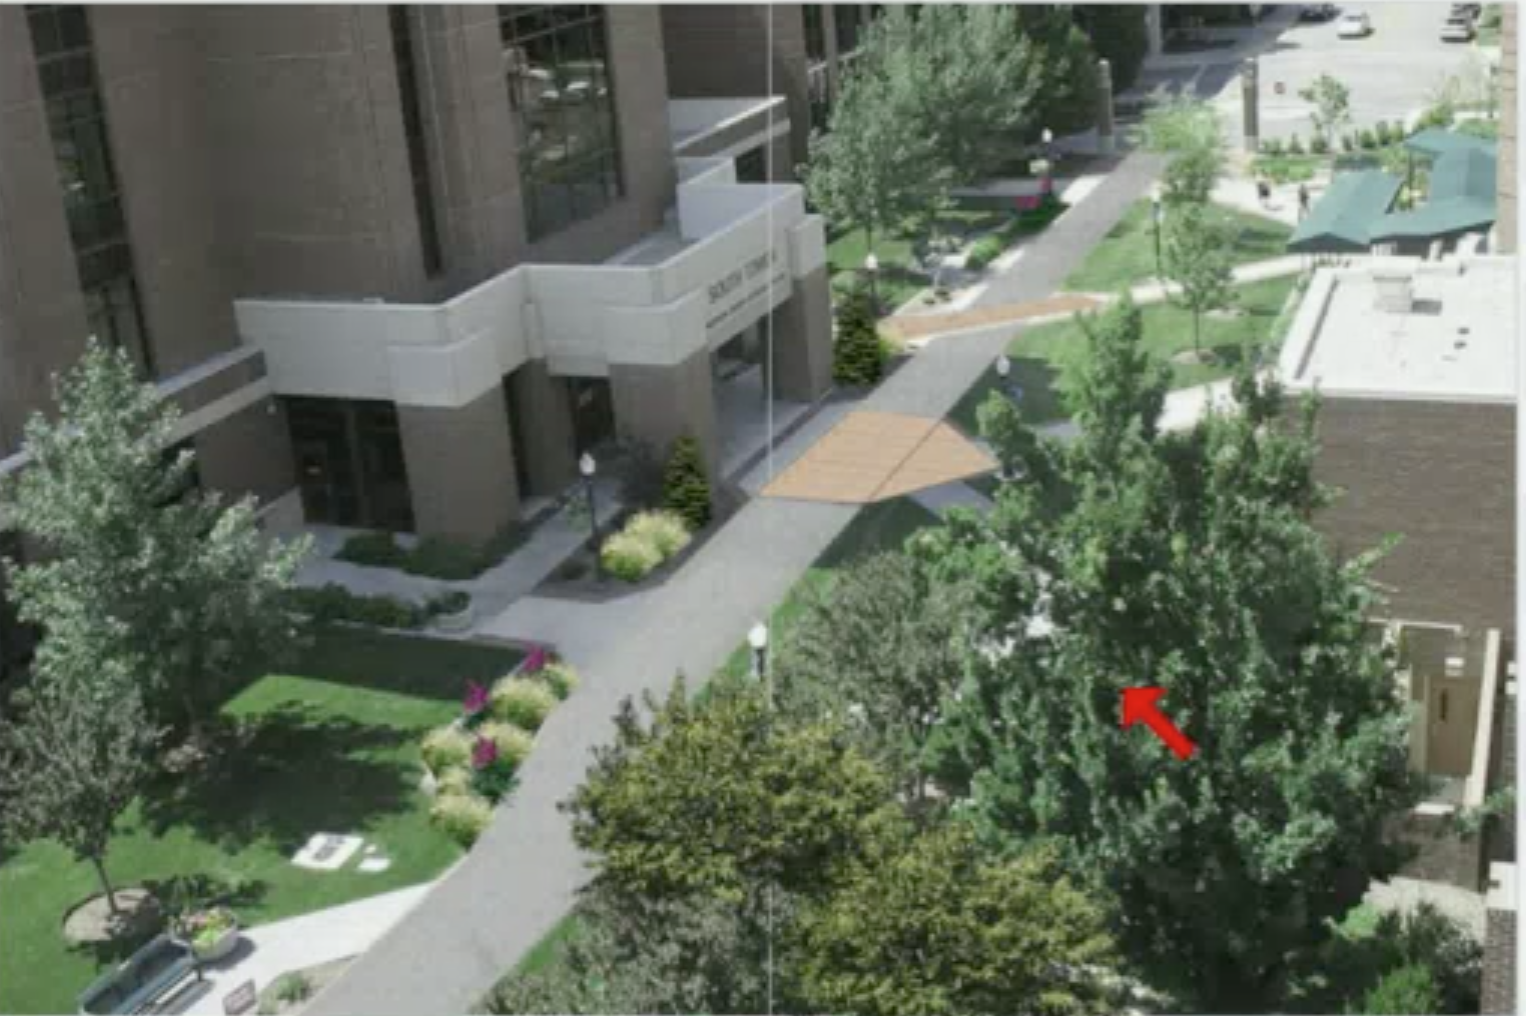 Rendering of proposed changes to Bannock St. corridor, via St. Luke's Health System as presented to Boise City Council